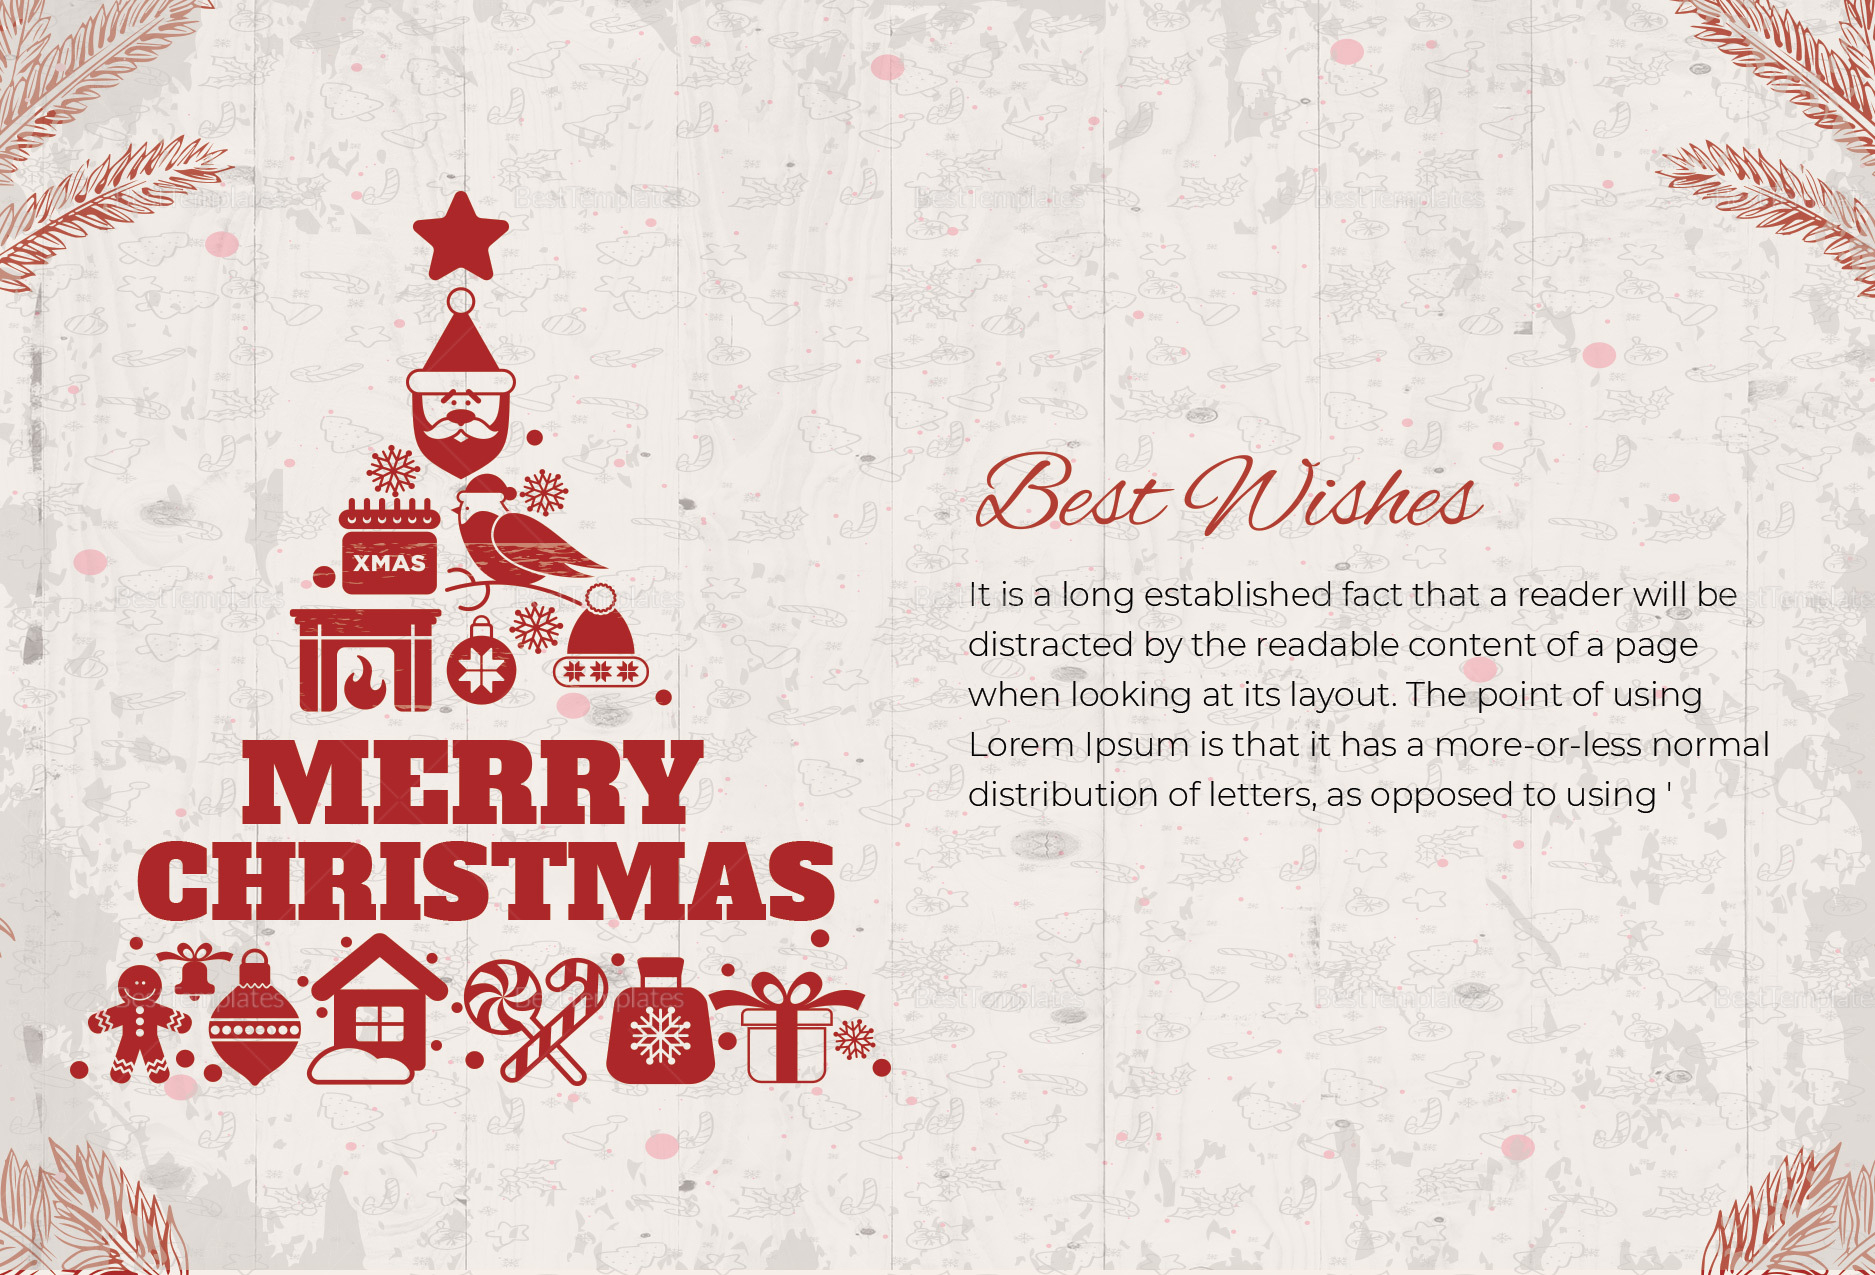 christmas wishes thank you card template in adobe photoshop